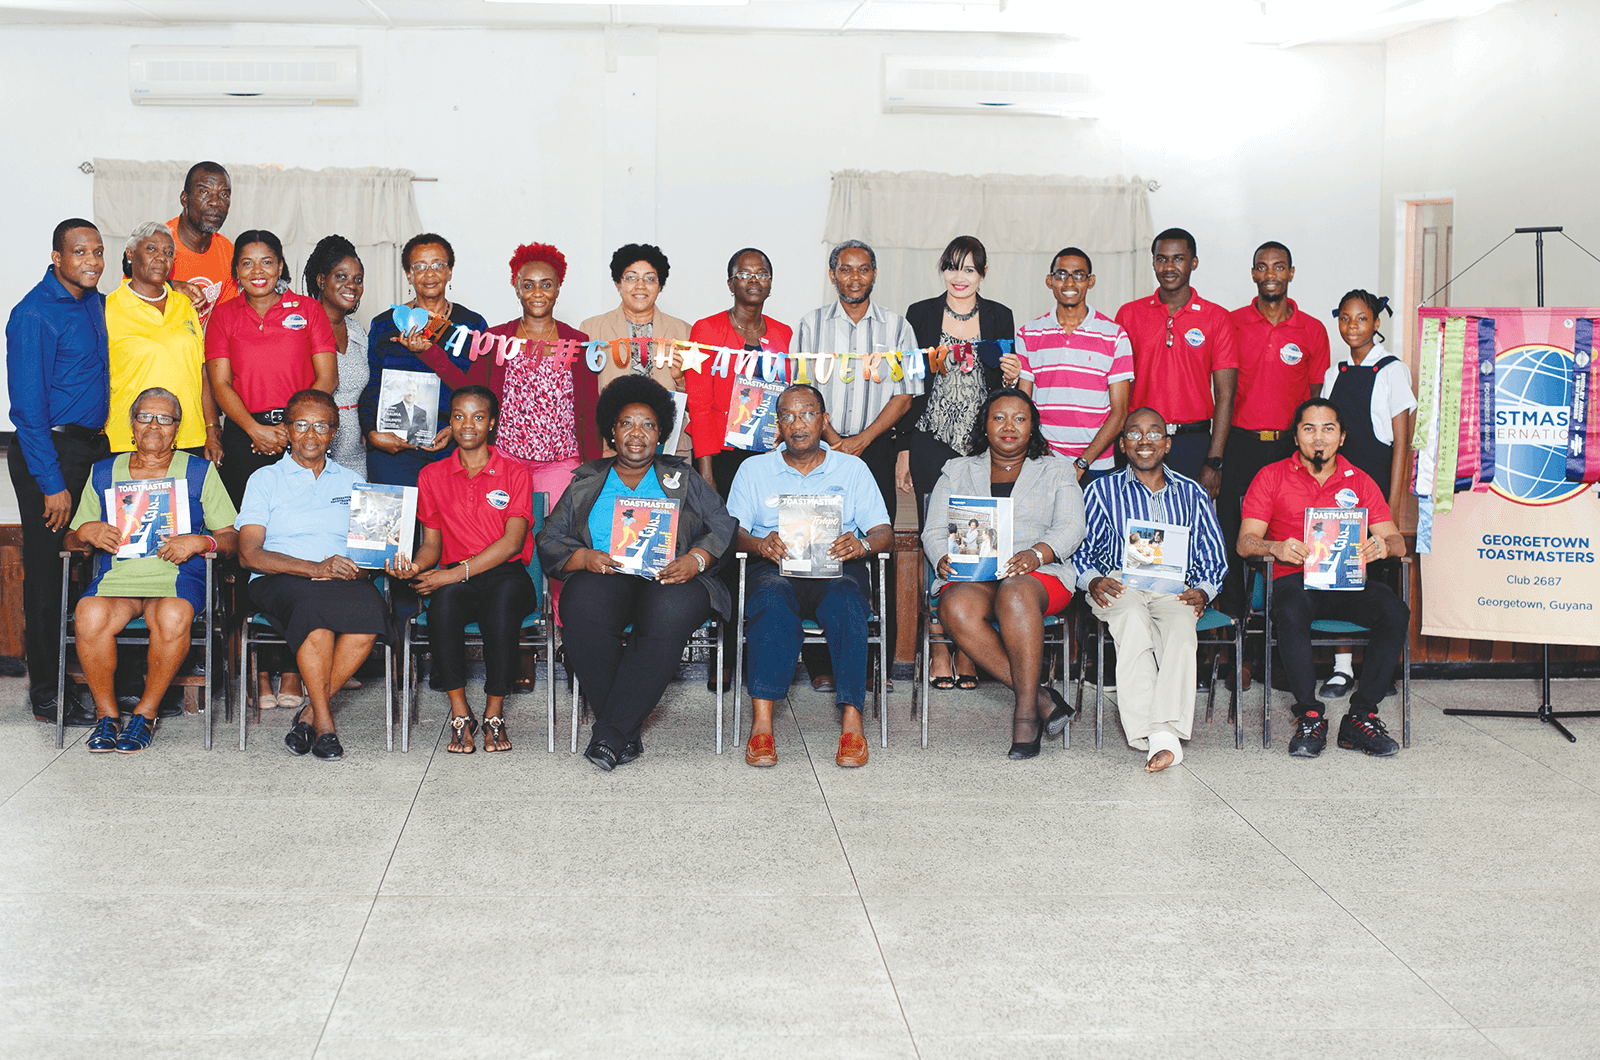 Group of Toastmasters members posing holding magazines